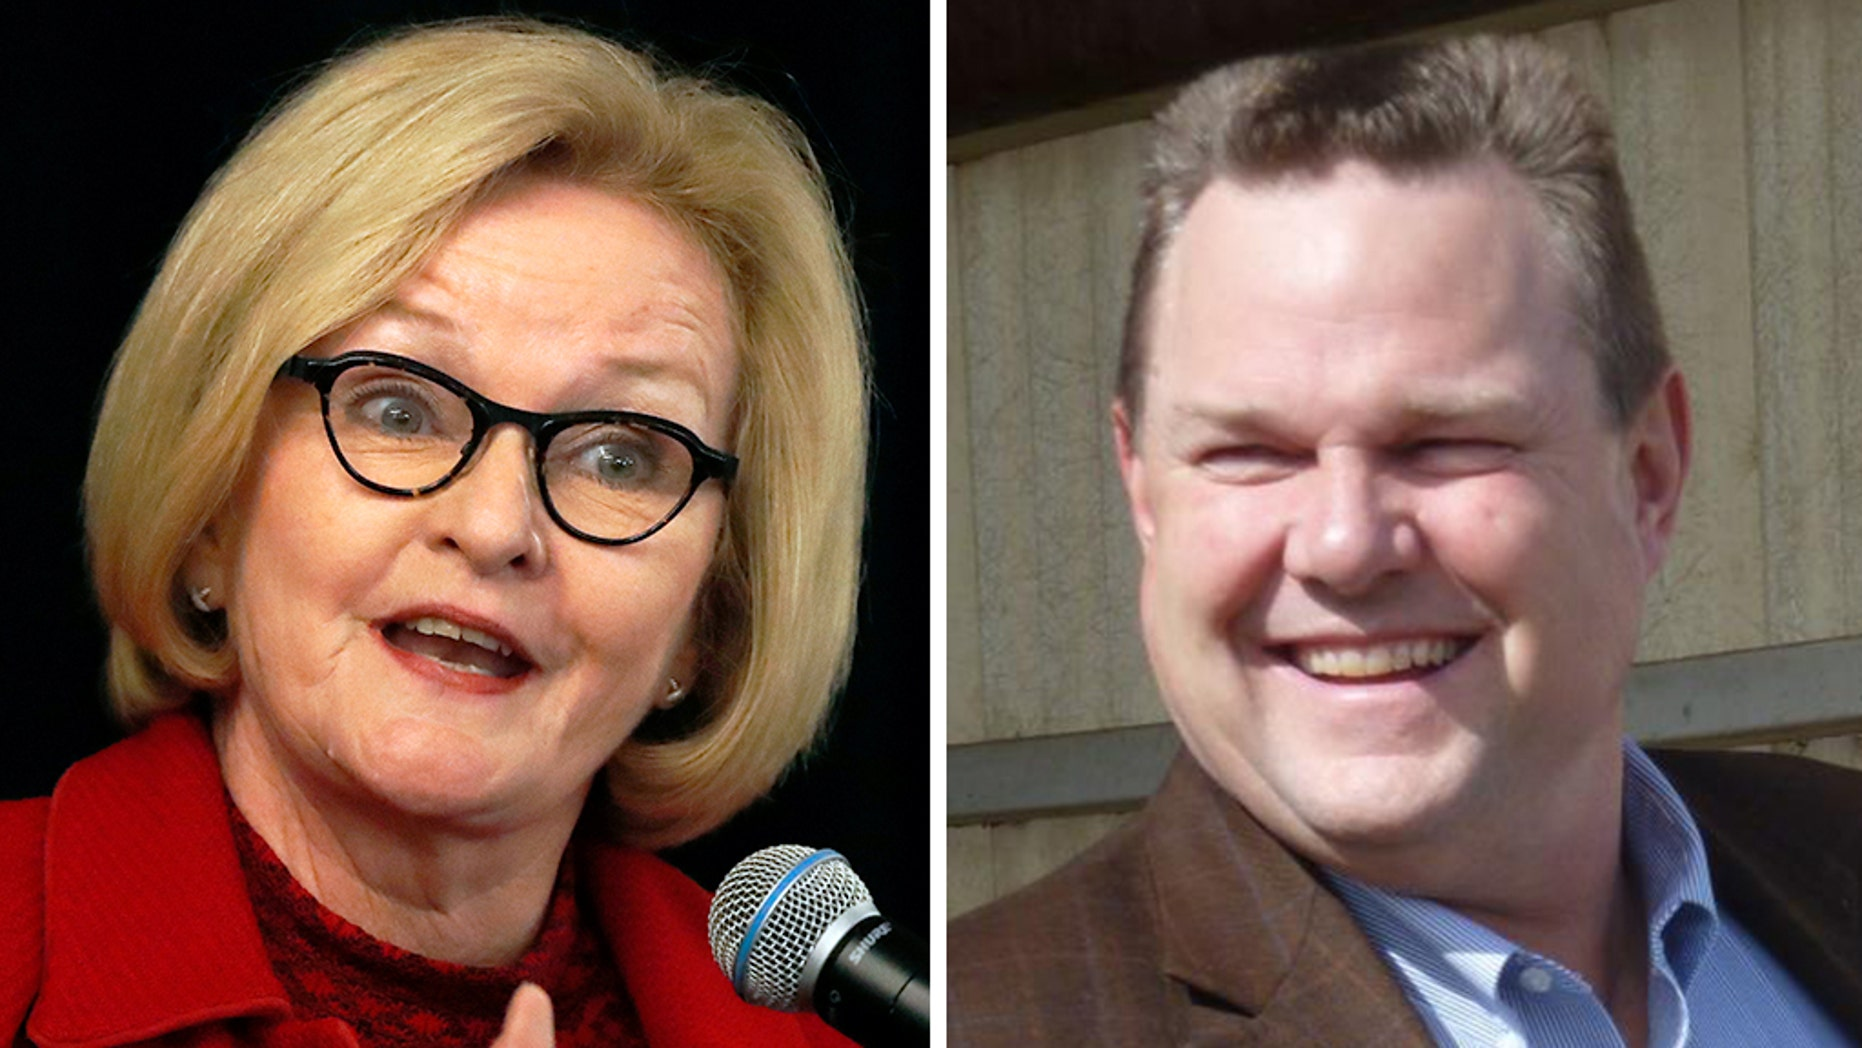 Missouri Sen. Claire McCaskill and Montana Sen. Jon Tester are locked in dead heats with their Republican challengers, a new poll finds.